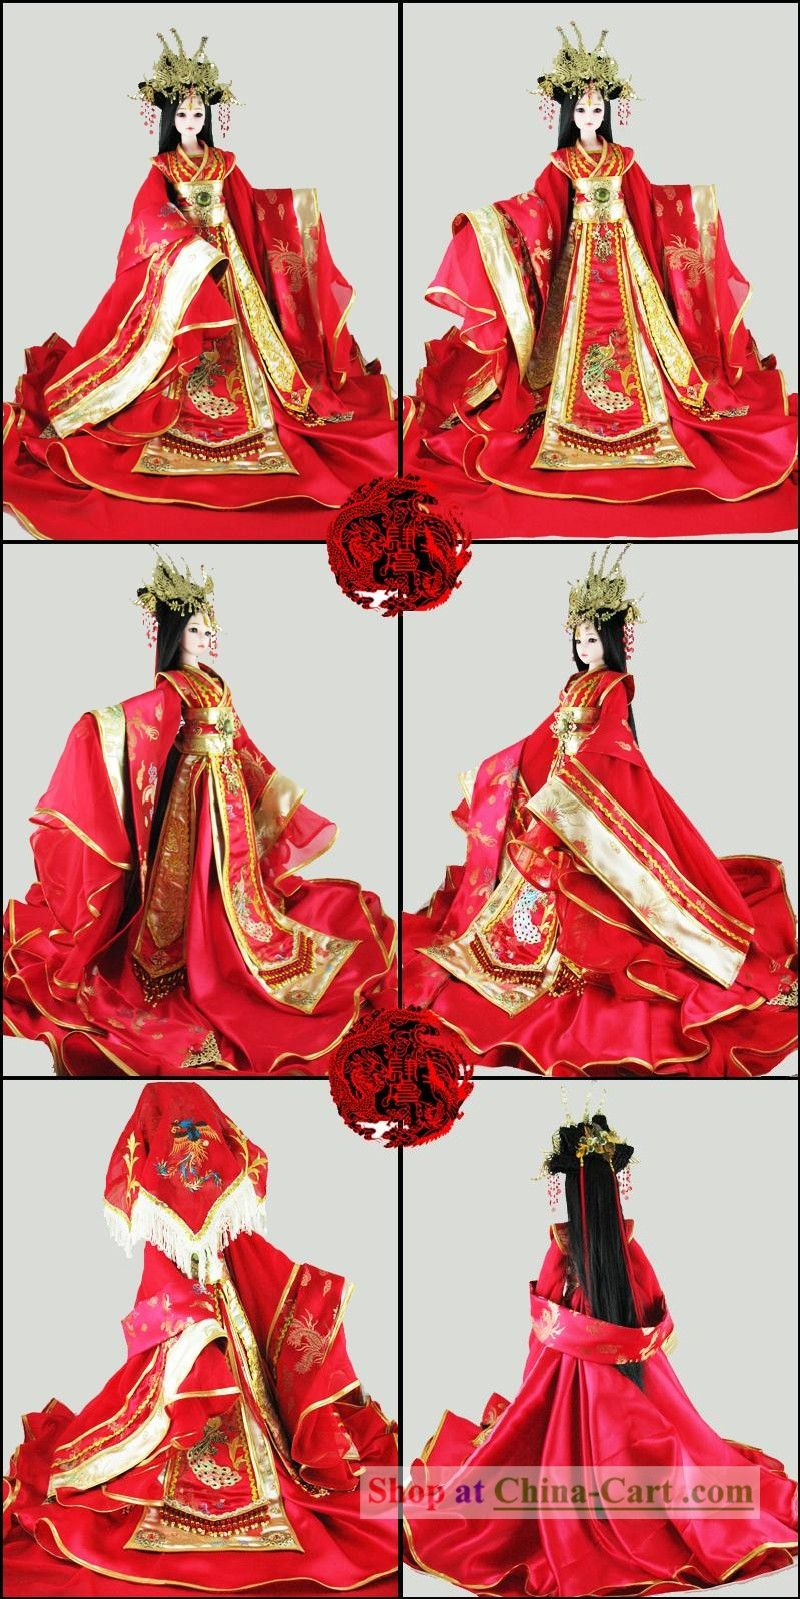 marriage ancient china Although chinese marriage customs are changing and developing all the time, the atmosphere created during the wedding is invariant - being ceremonious, enthusiastic, jubilant and auspicious.